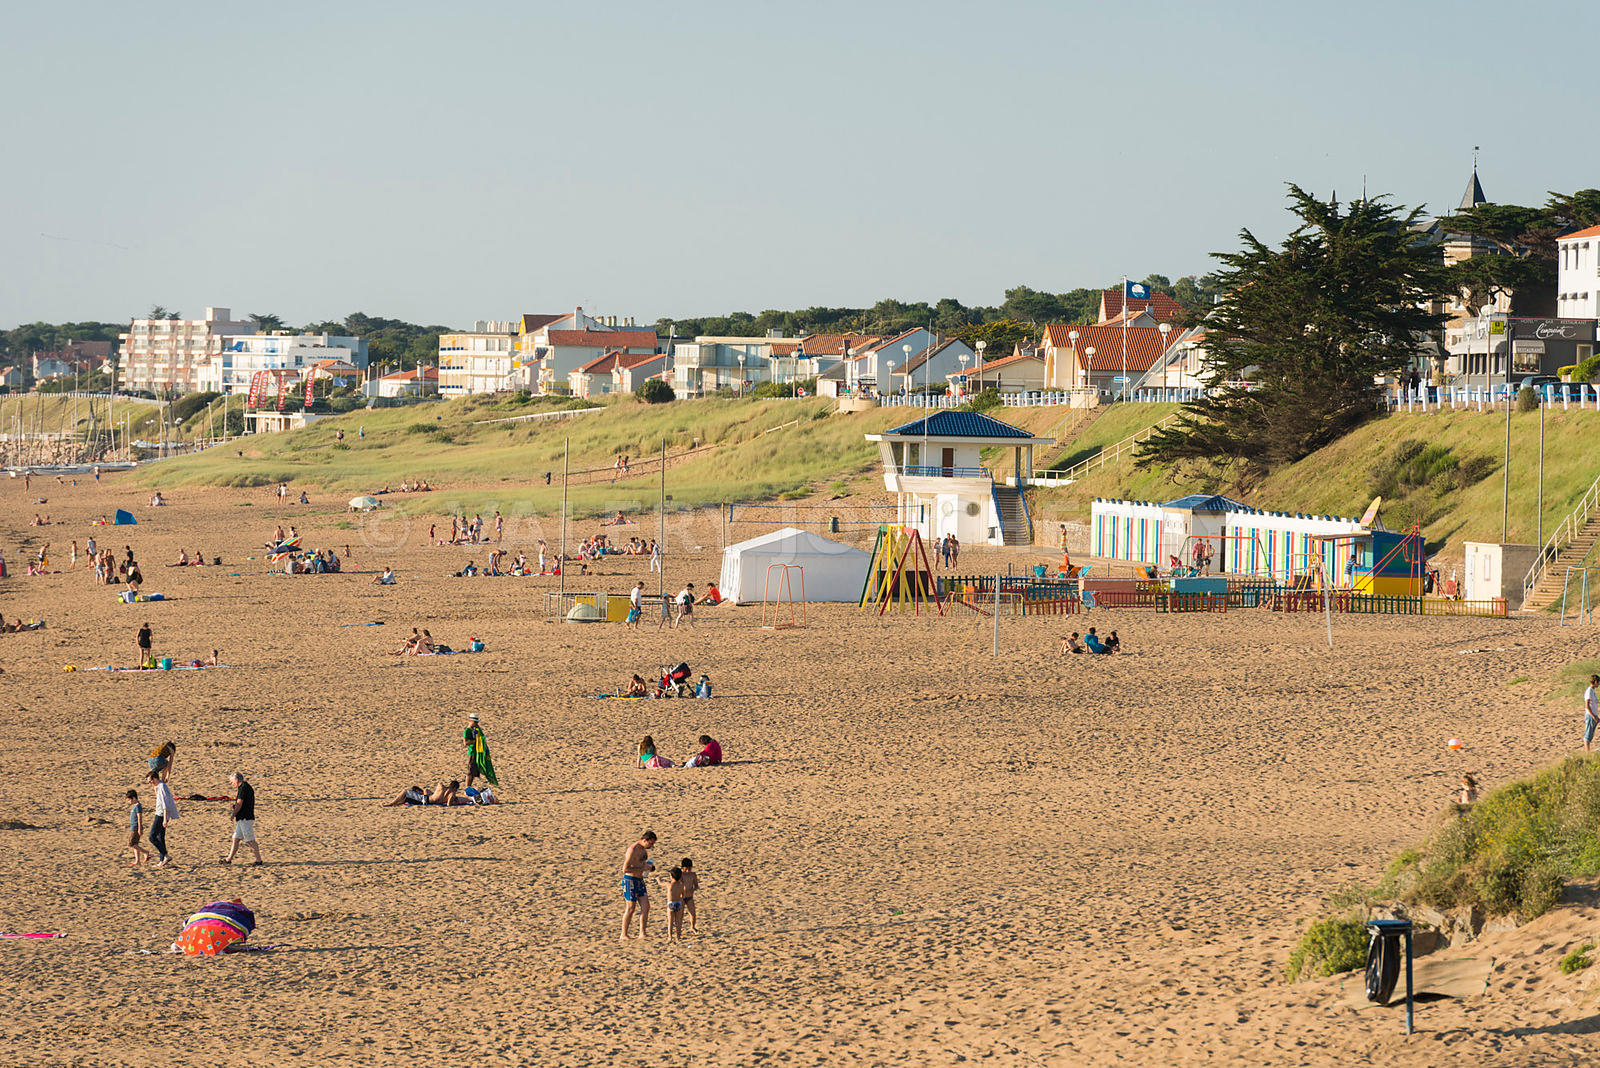 photo: Tharon plage